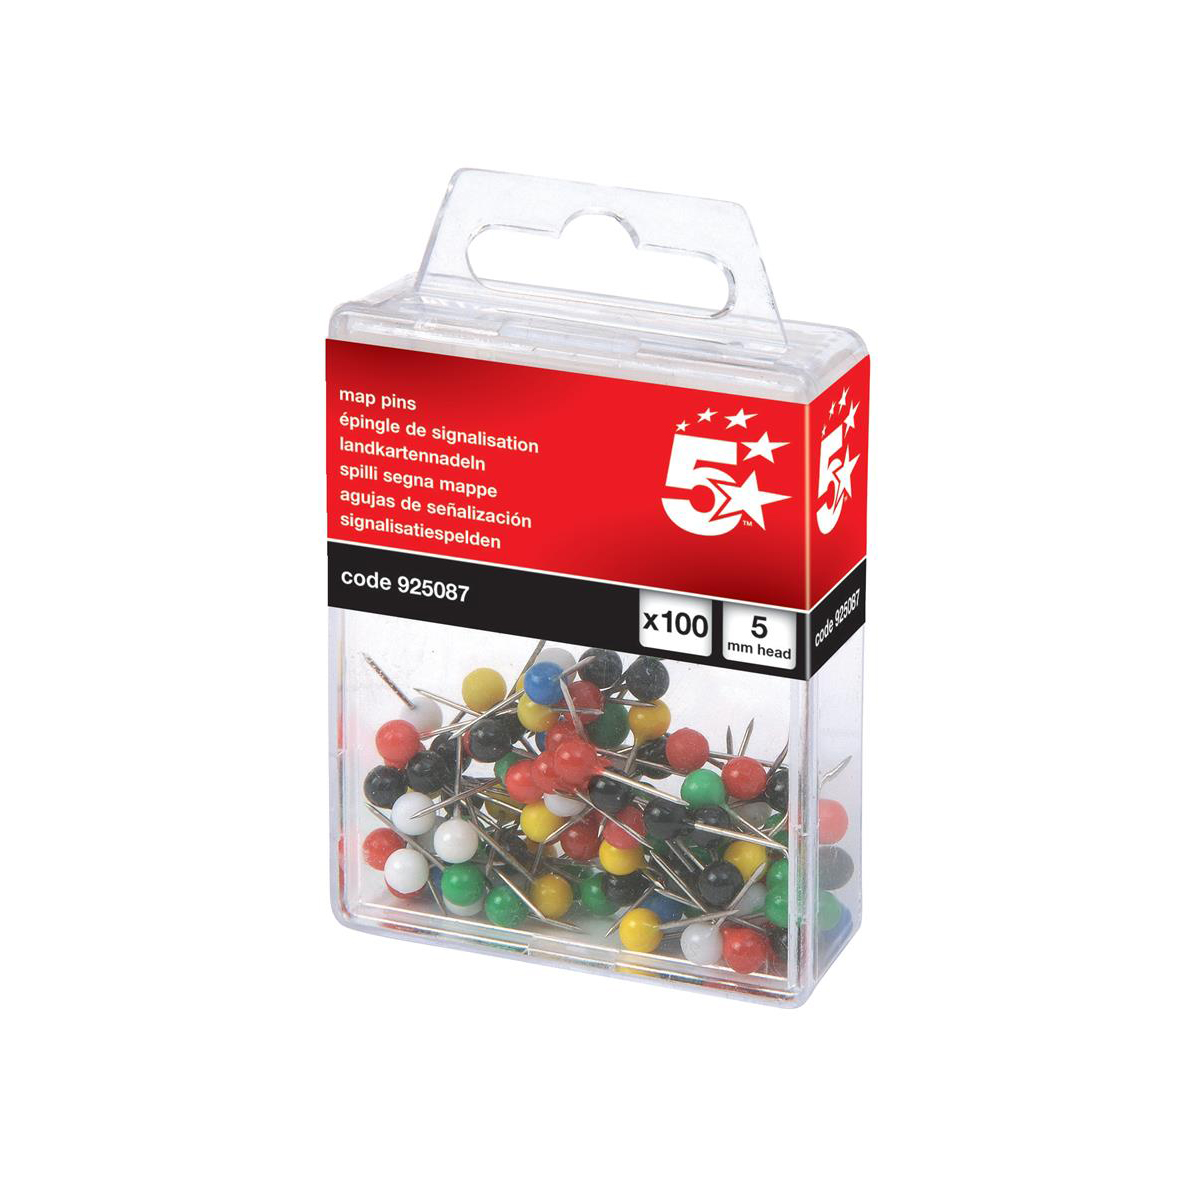 5 Star Office Map Pins 5mm Head Assorted Pack 100